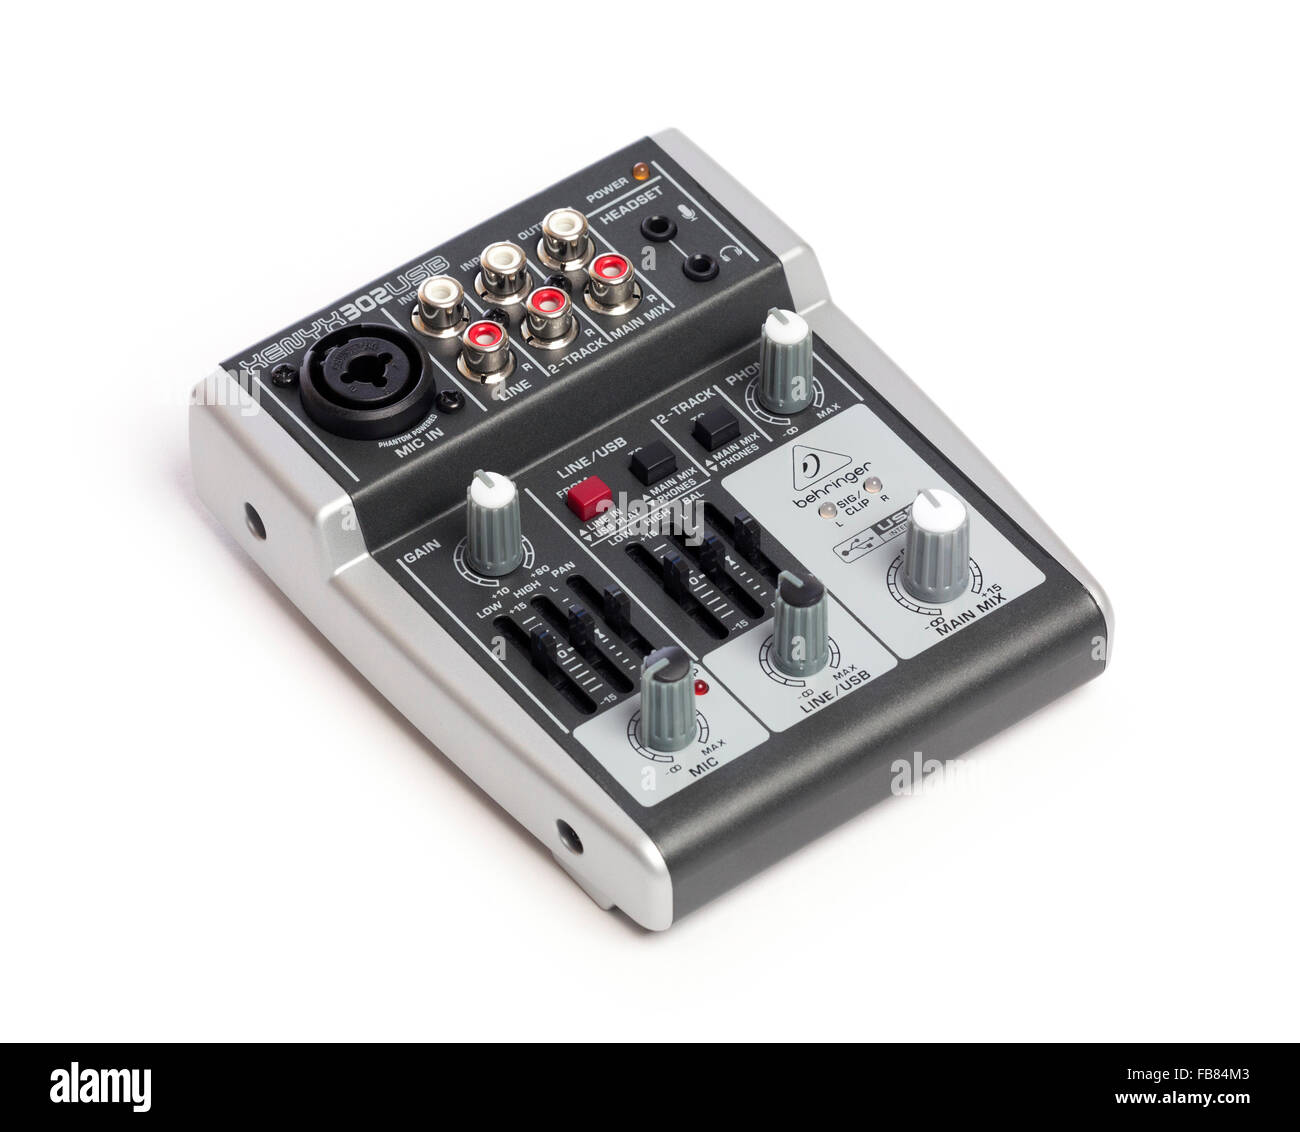 compact audio mixer with 5 inputs - Stock Image